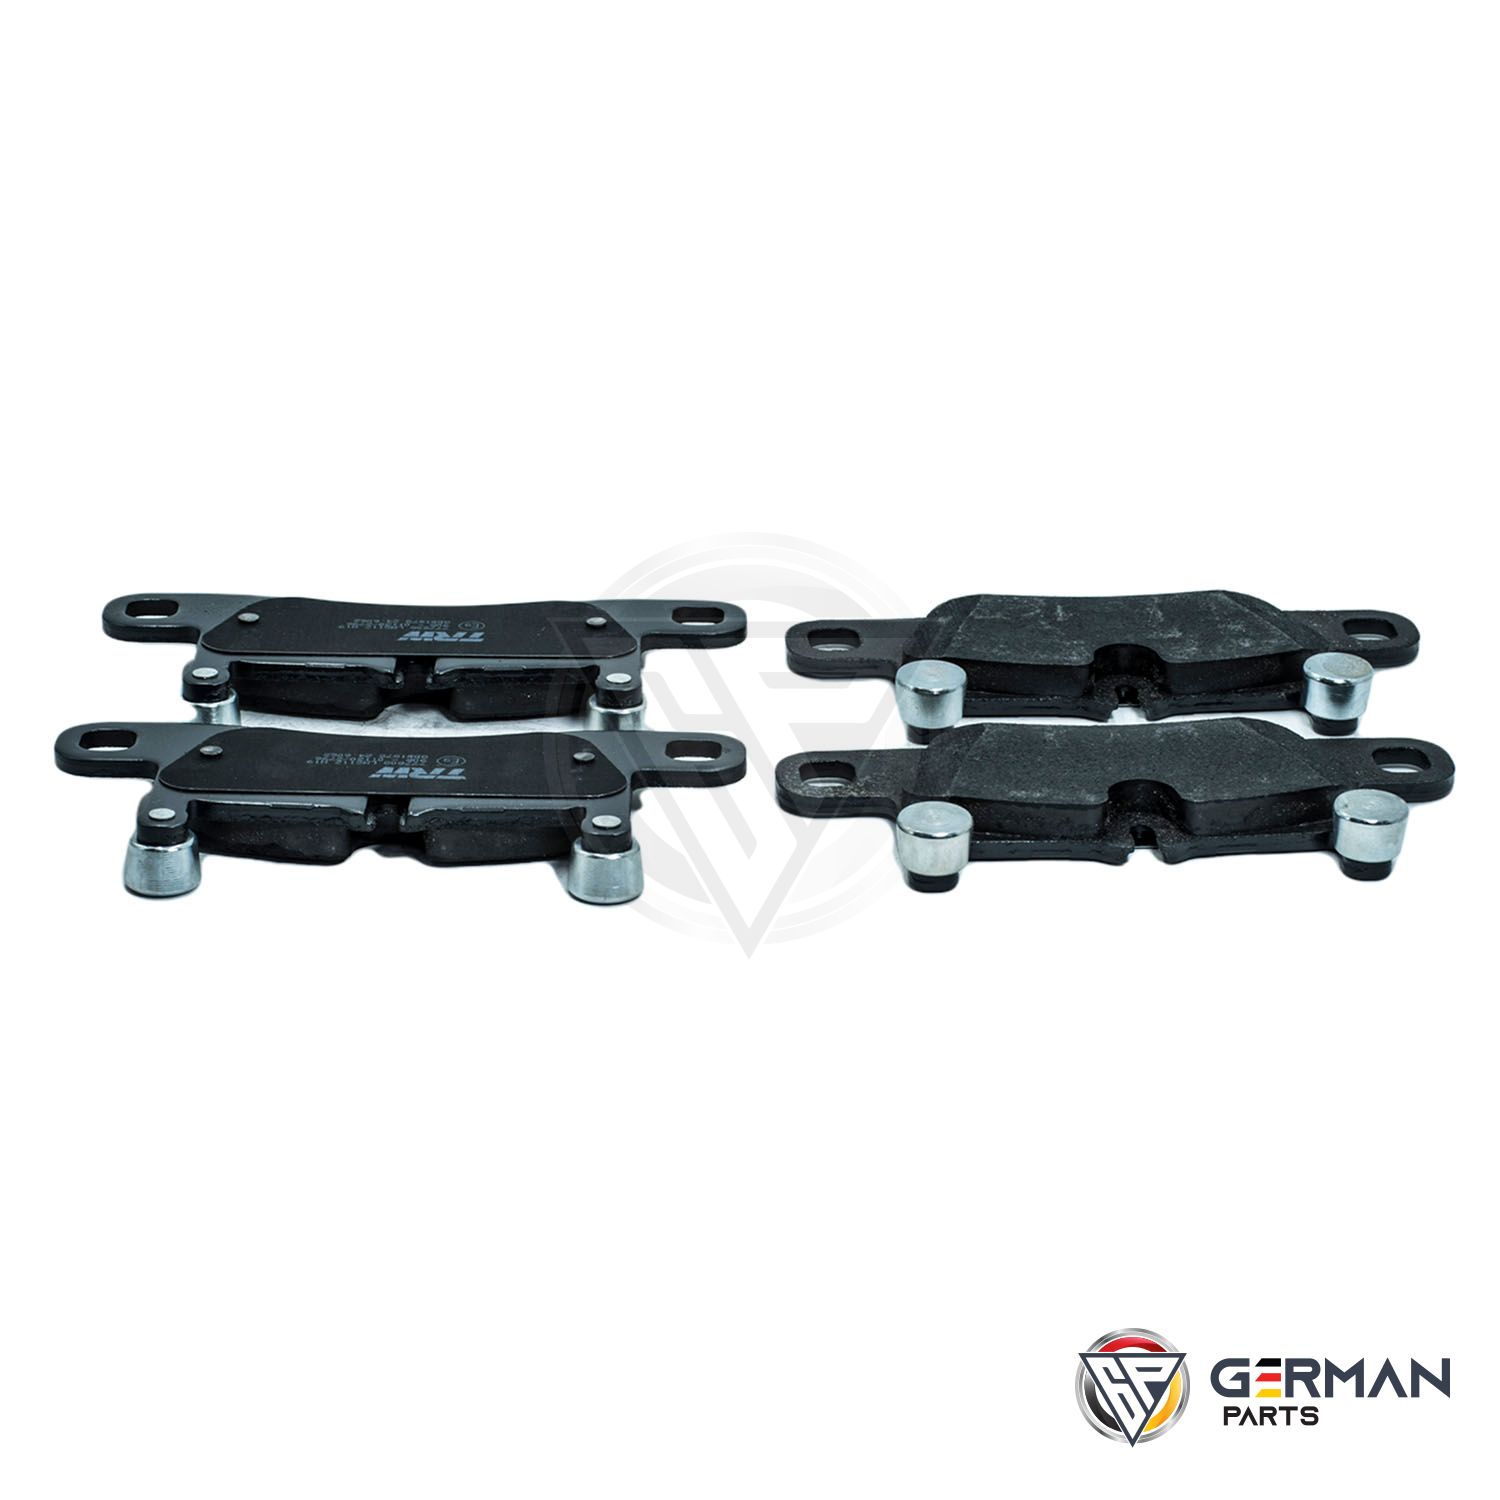 Buy TRW Rear Brake Pad Set 7P0698451 - German Parts